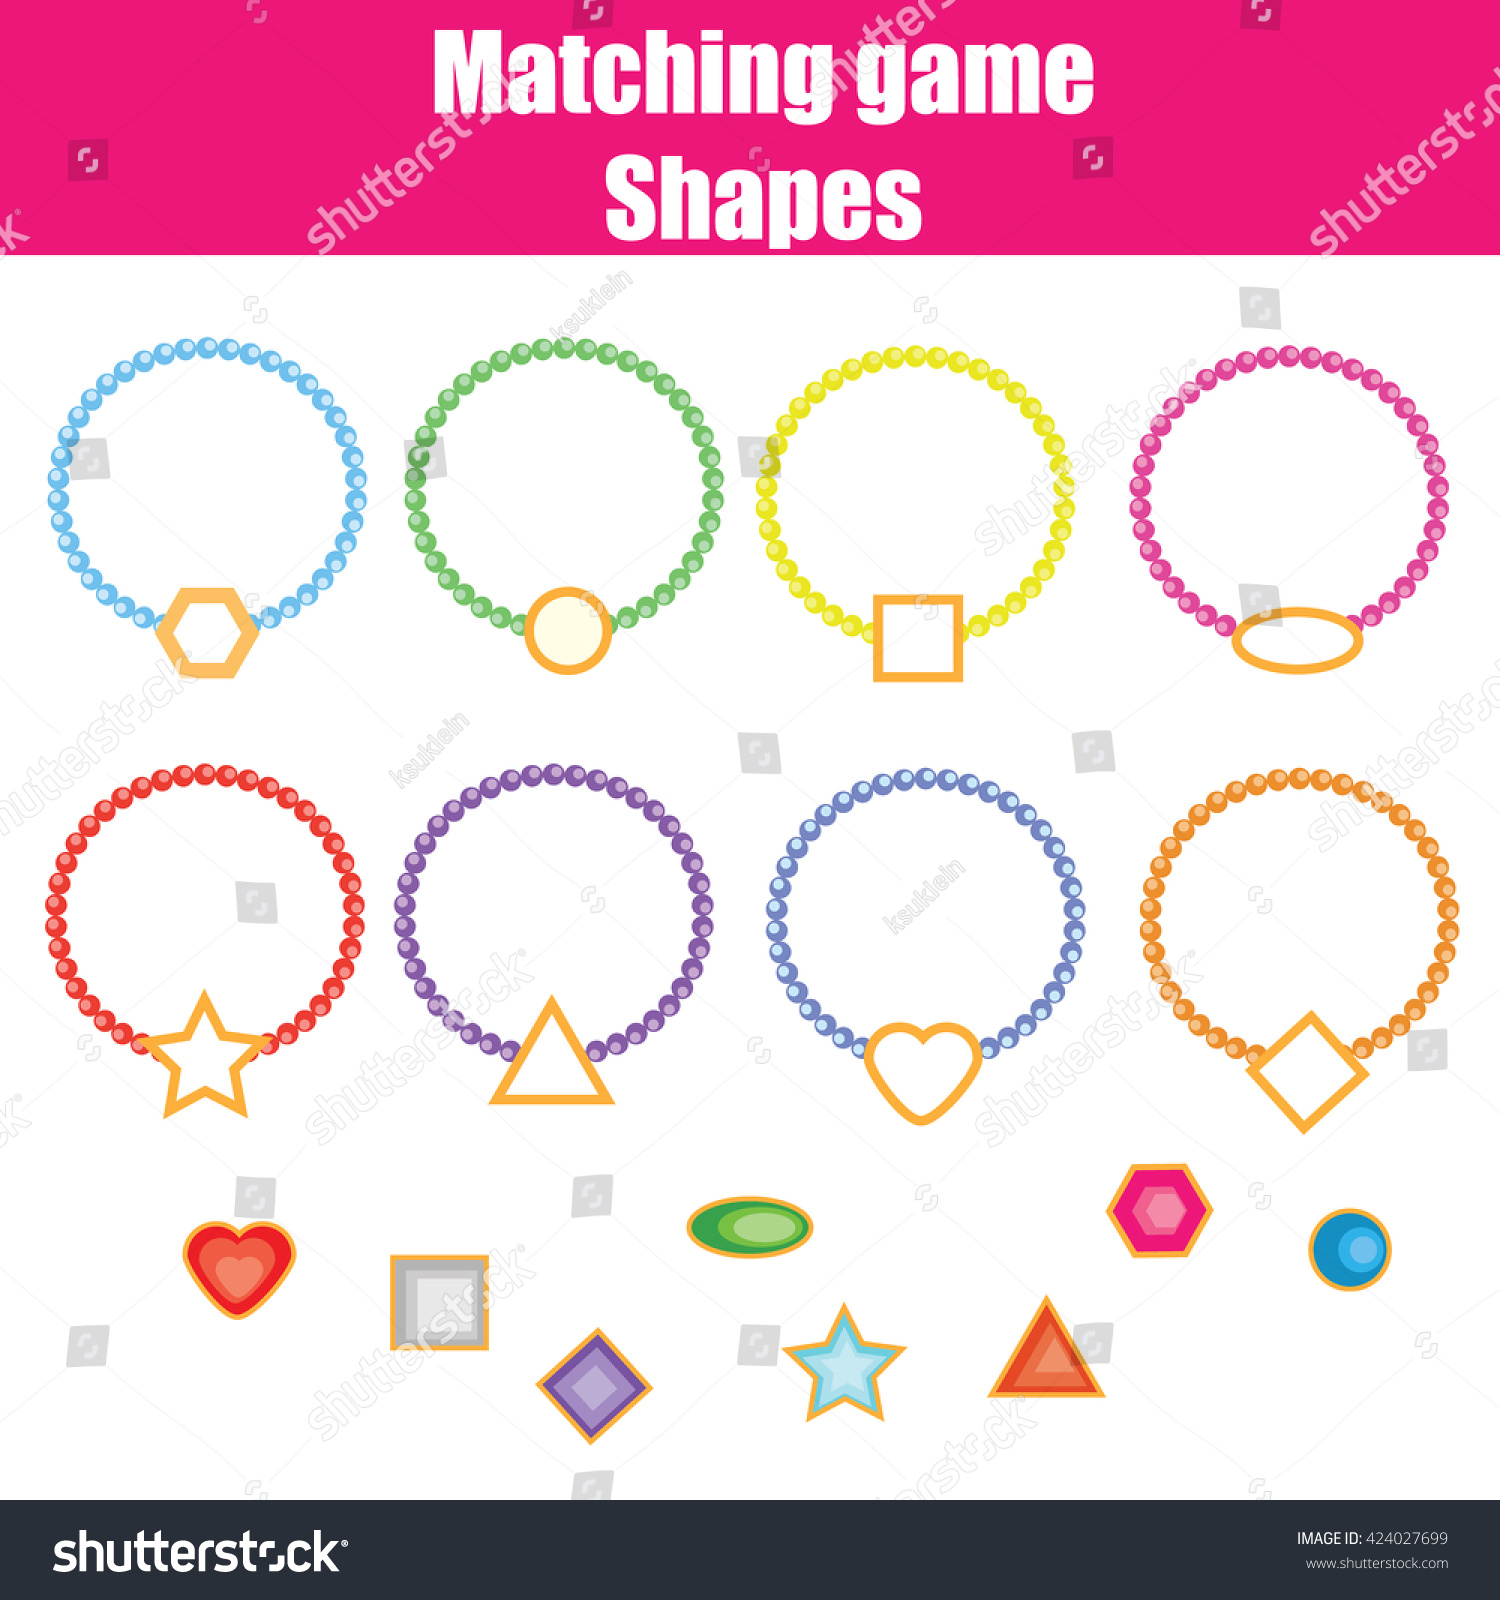 Matching Game Match The Shapes Task Learning Geometry Shapes Theme For Kids Books Worksheets